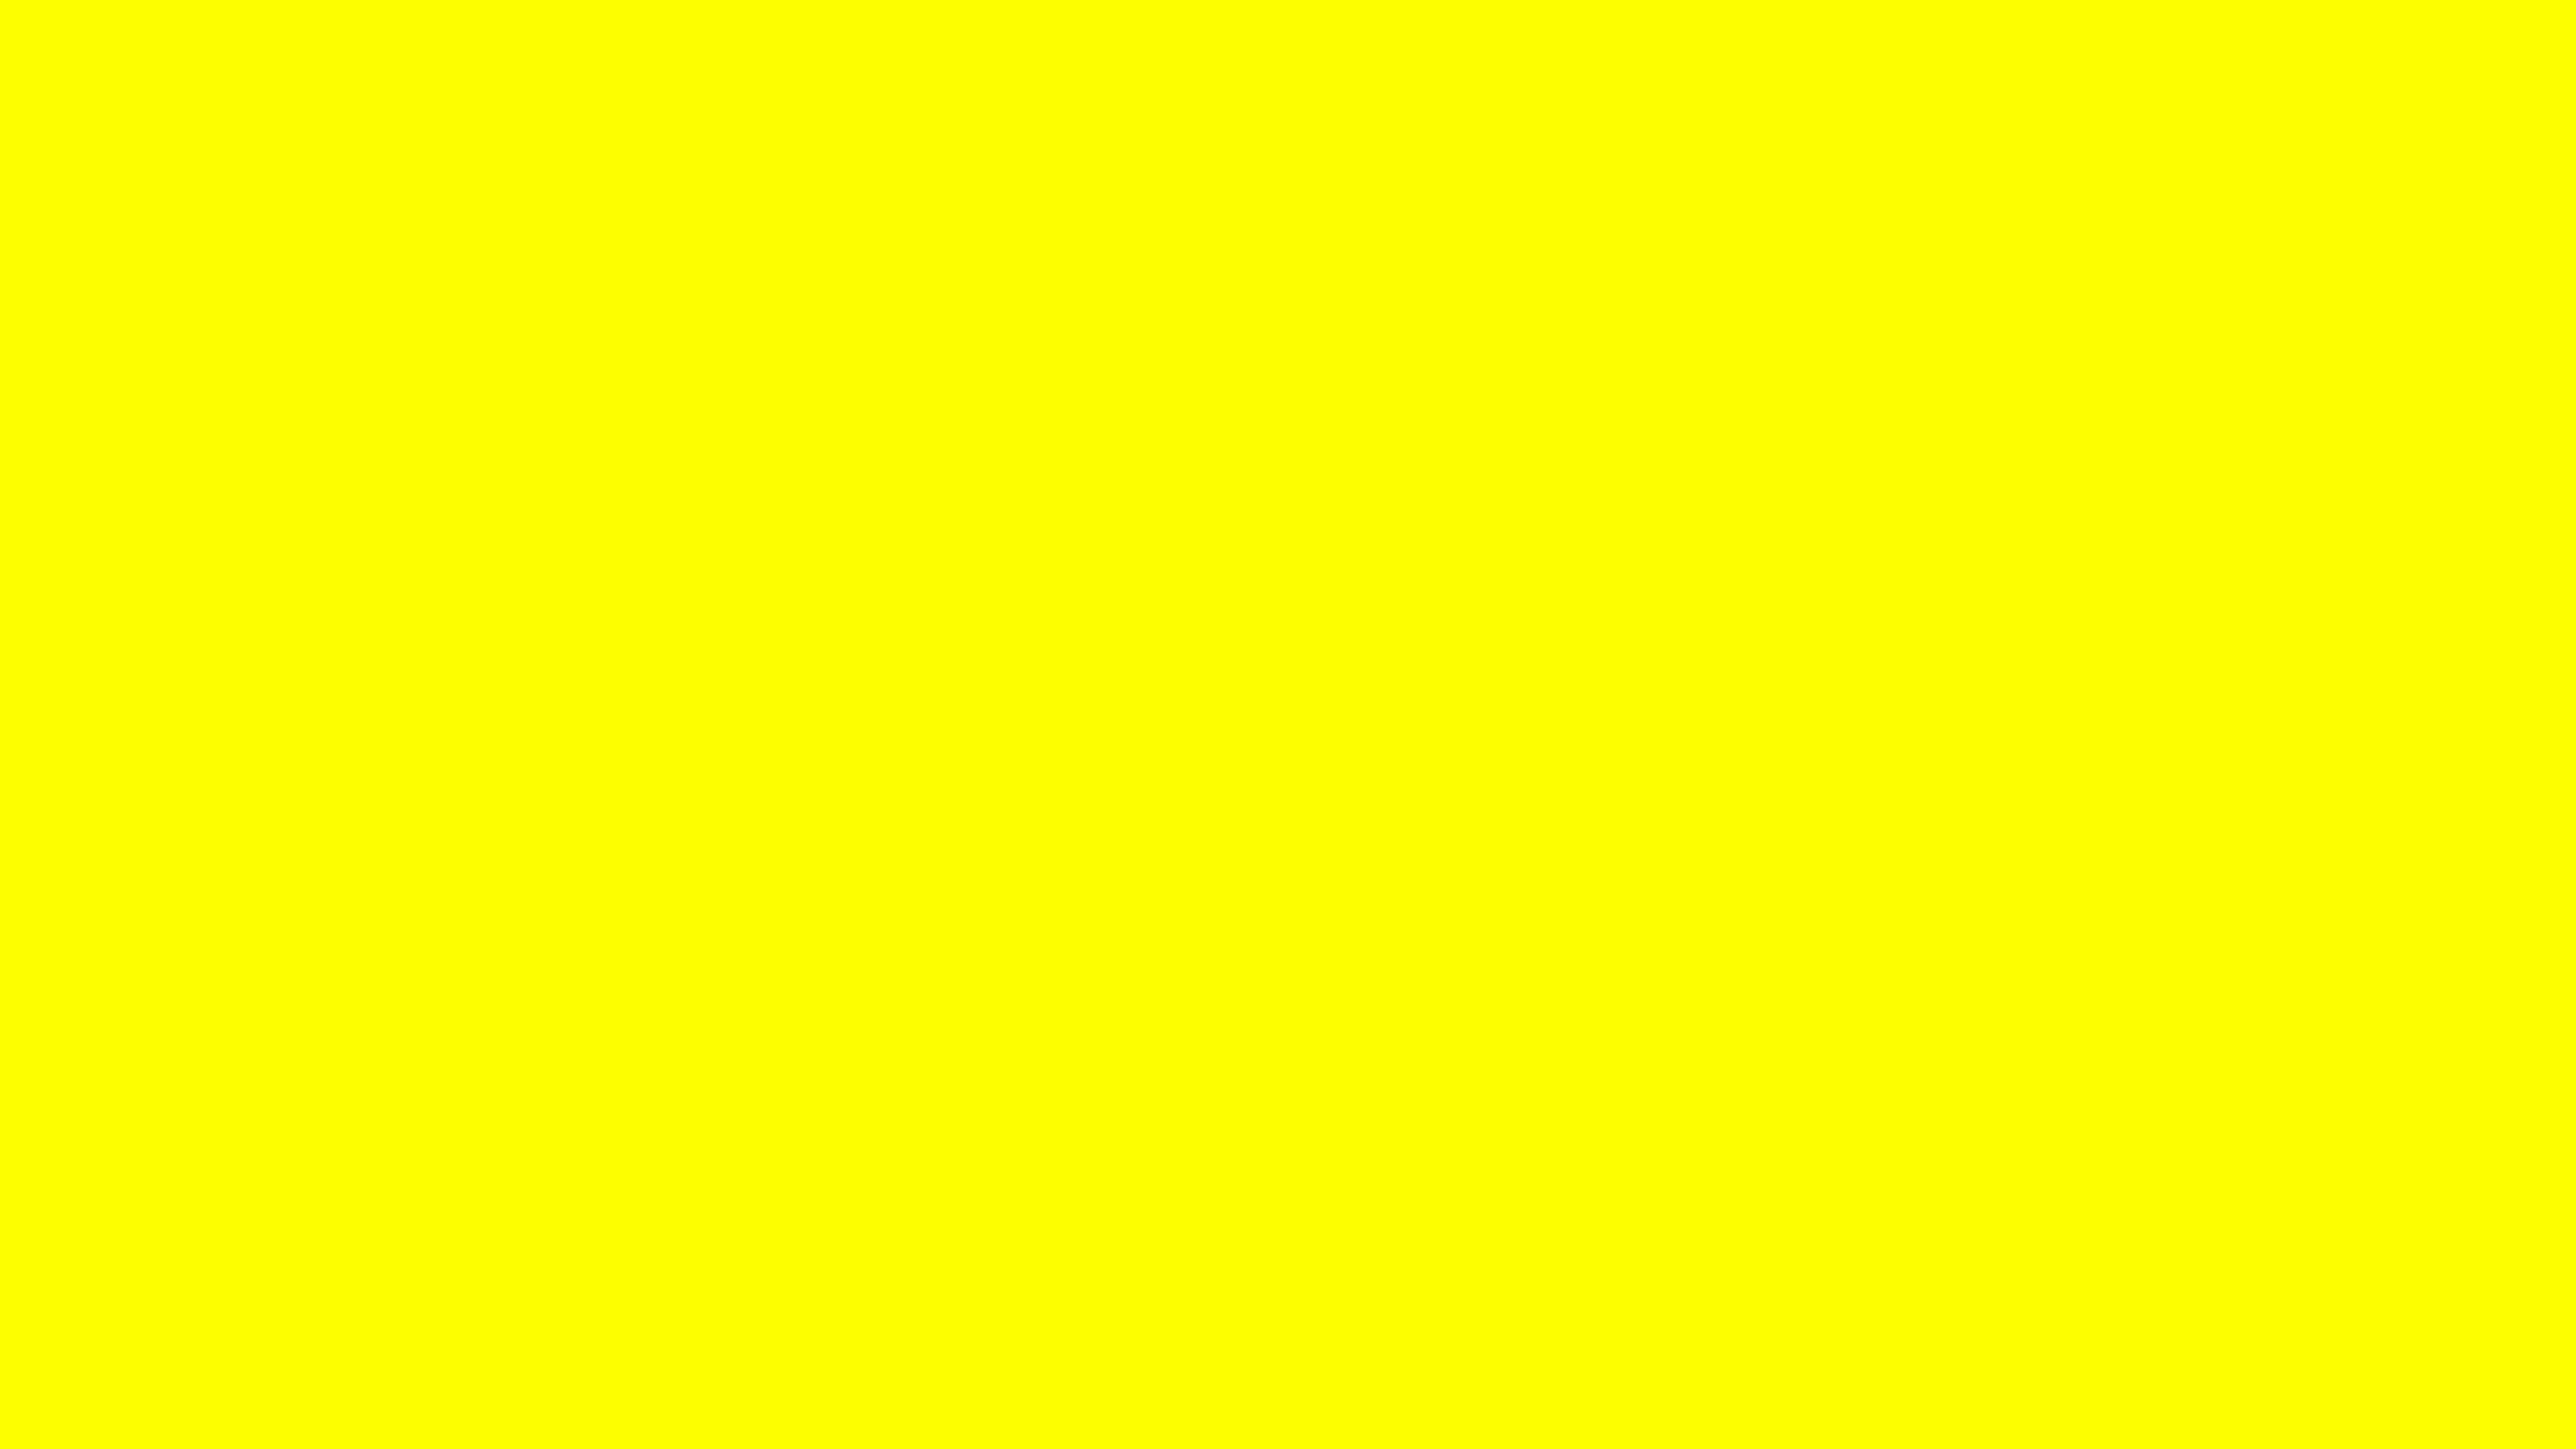 7680x4320 Yellow Solid Color Background